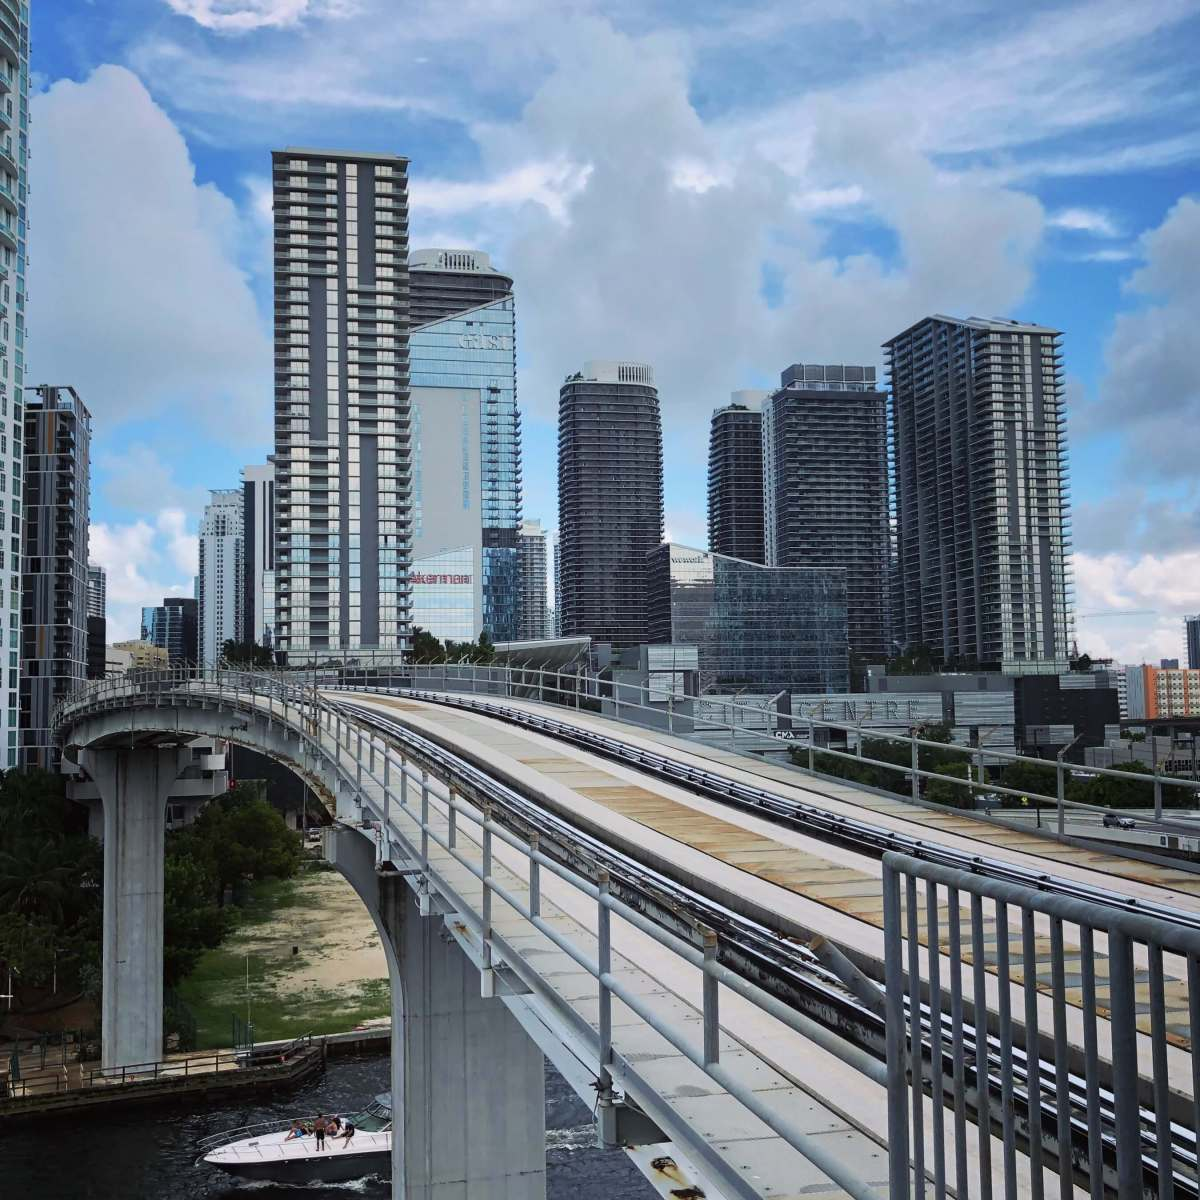 Metromover railway track in downtown Miami